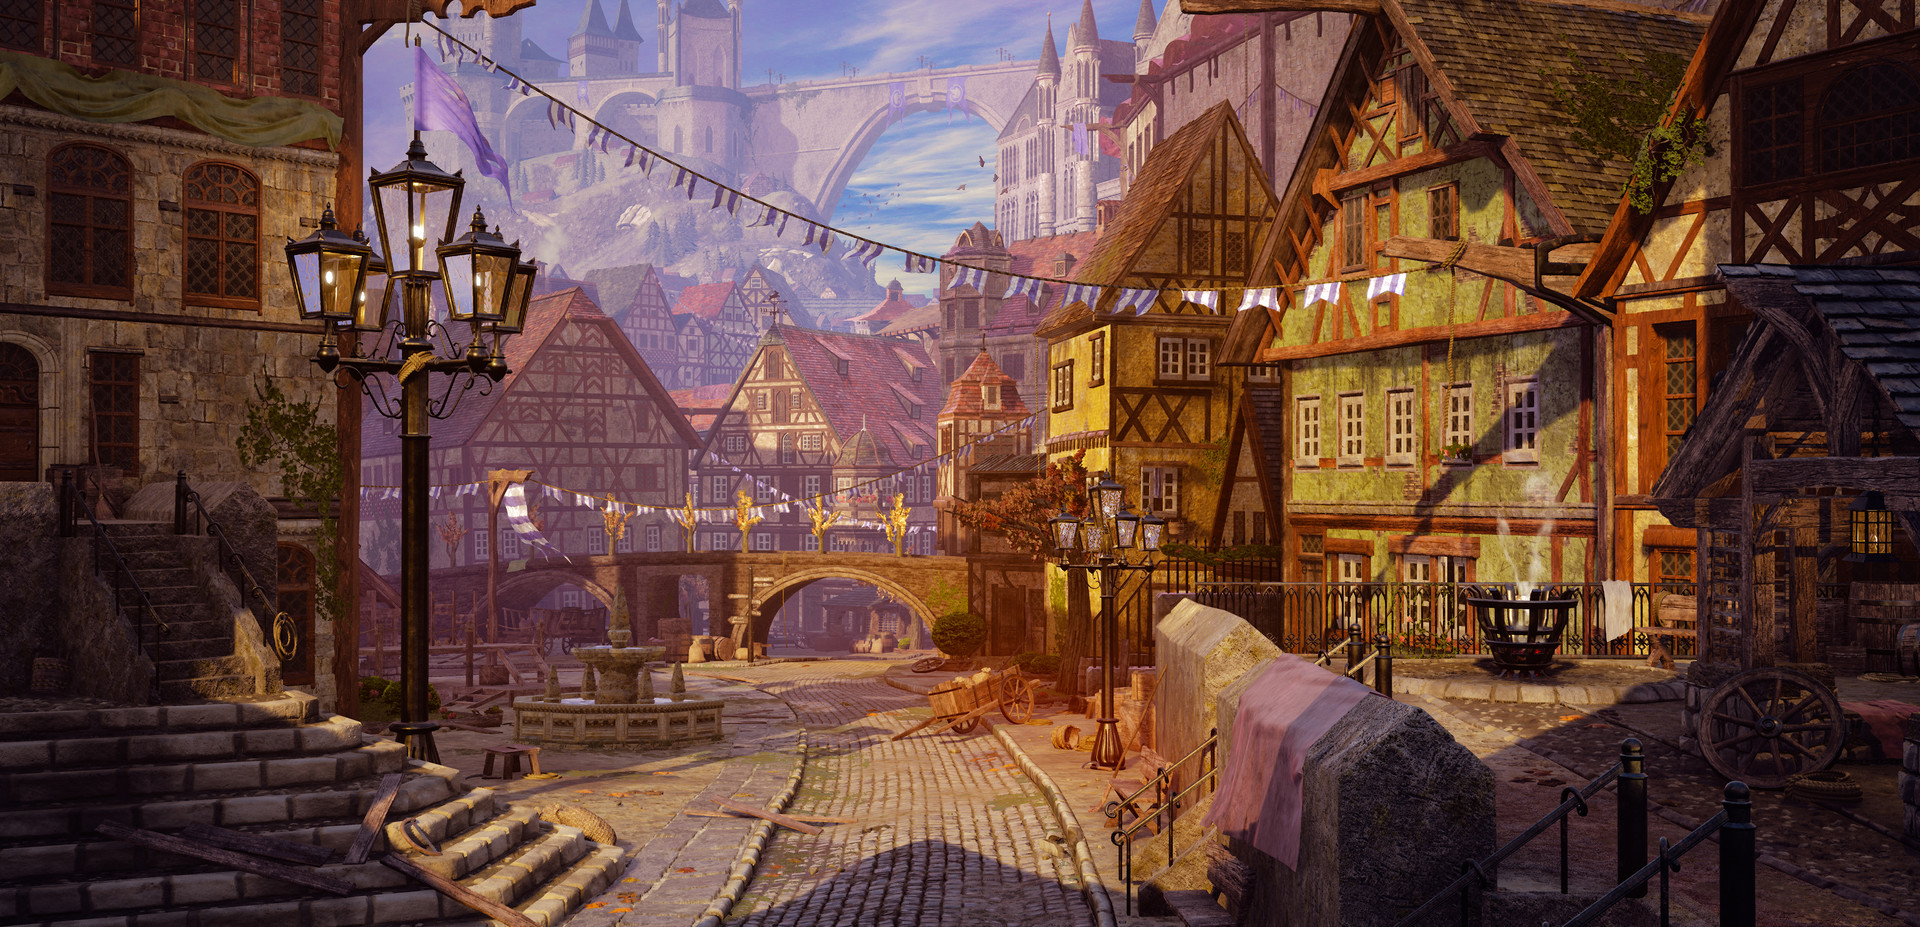 Career Advice - Working as an Environment Artist with Brennan Howell